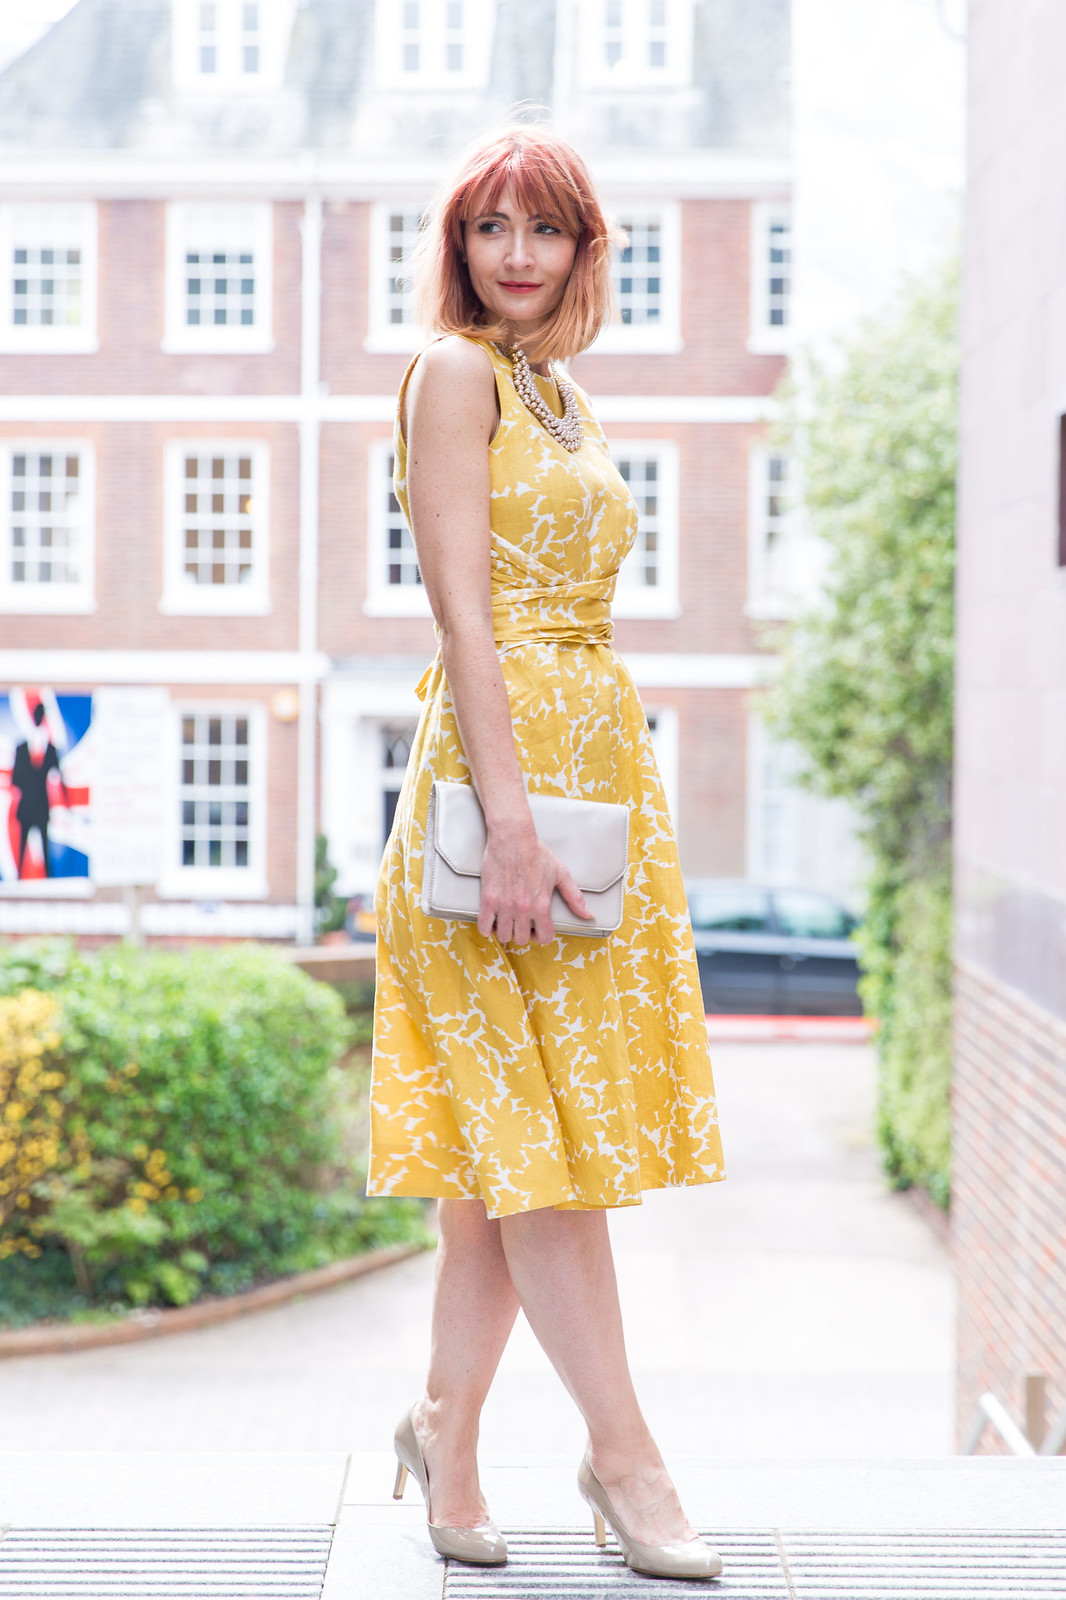 Hobbs SS16: Yellow fit n flare dress, pearl choker | Not Dressed As Lamb (photo: Kate Forster)